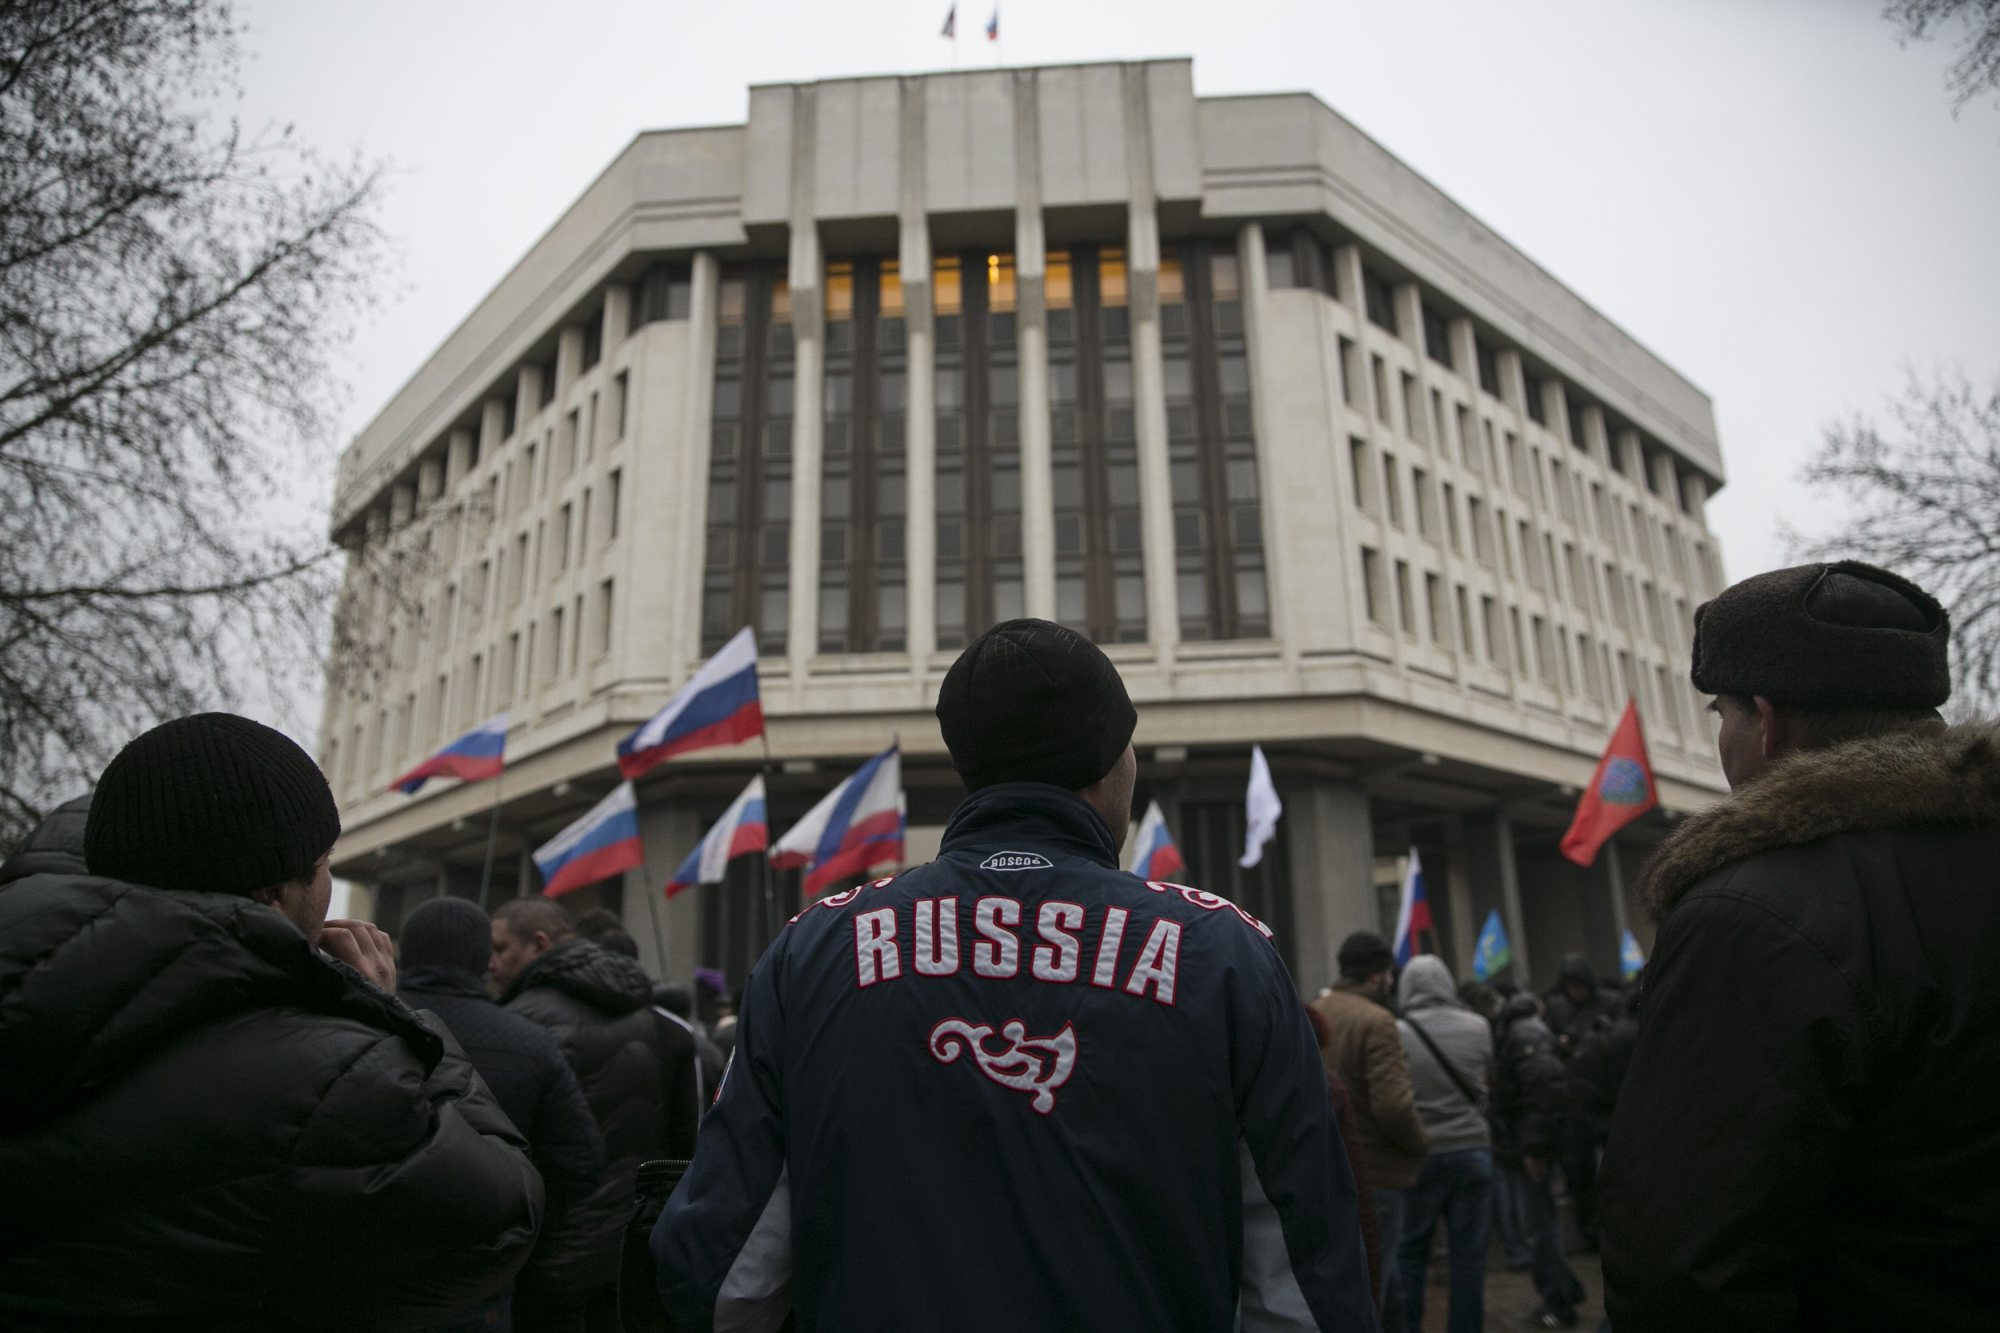 Men stand during a pro-Russian rally outside the Crimean parliament building in Simferopol, Feb. 27, 2014.